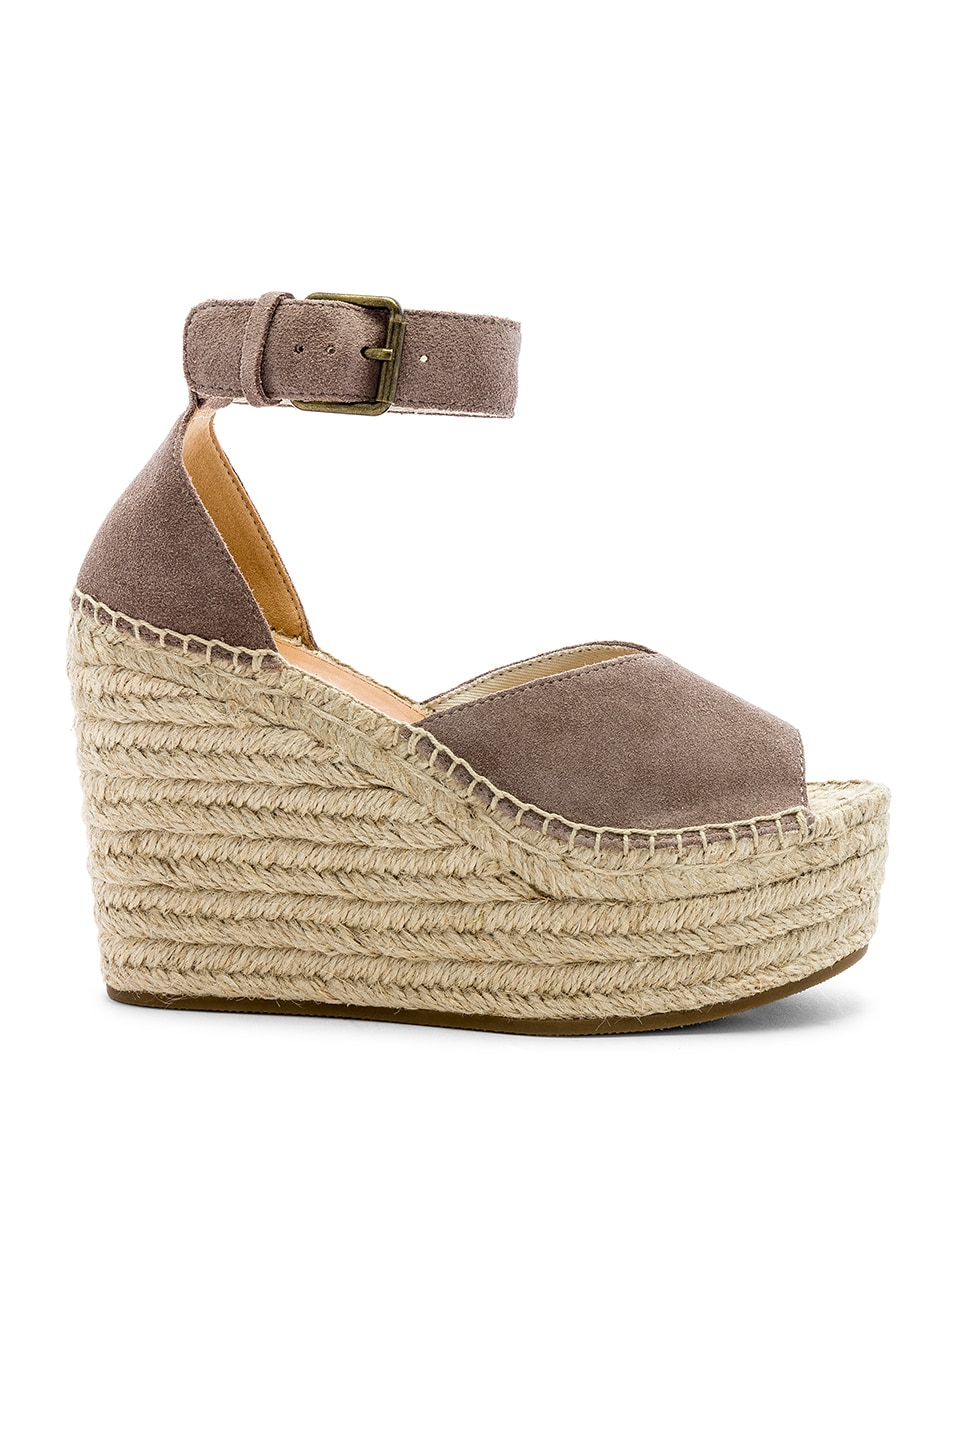 Soludos Positano Platform Wedge in Ash